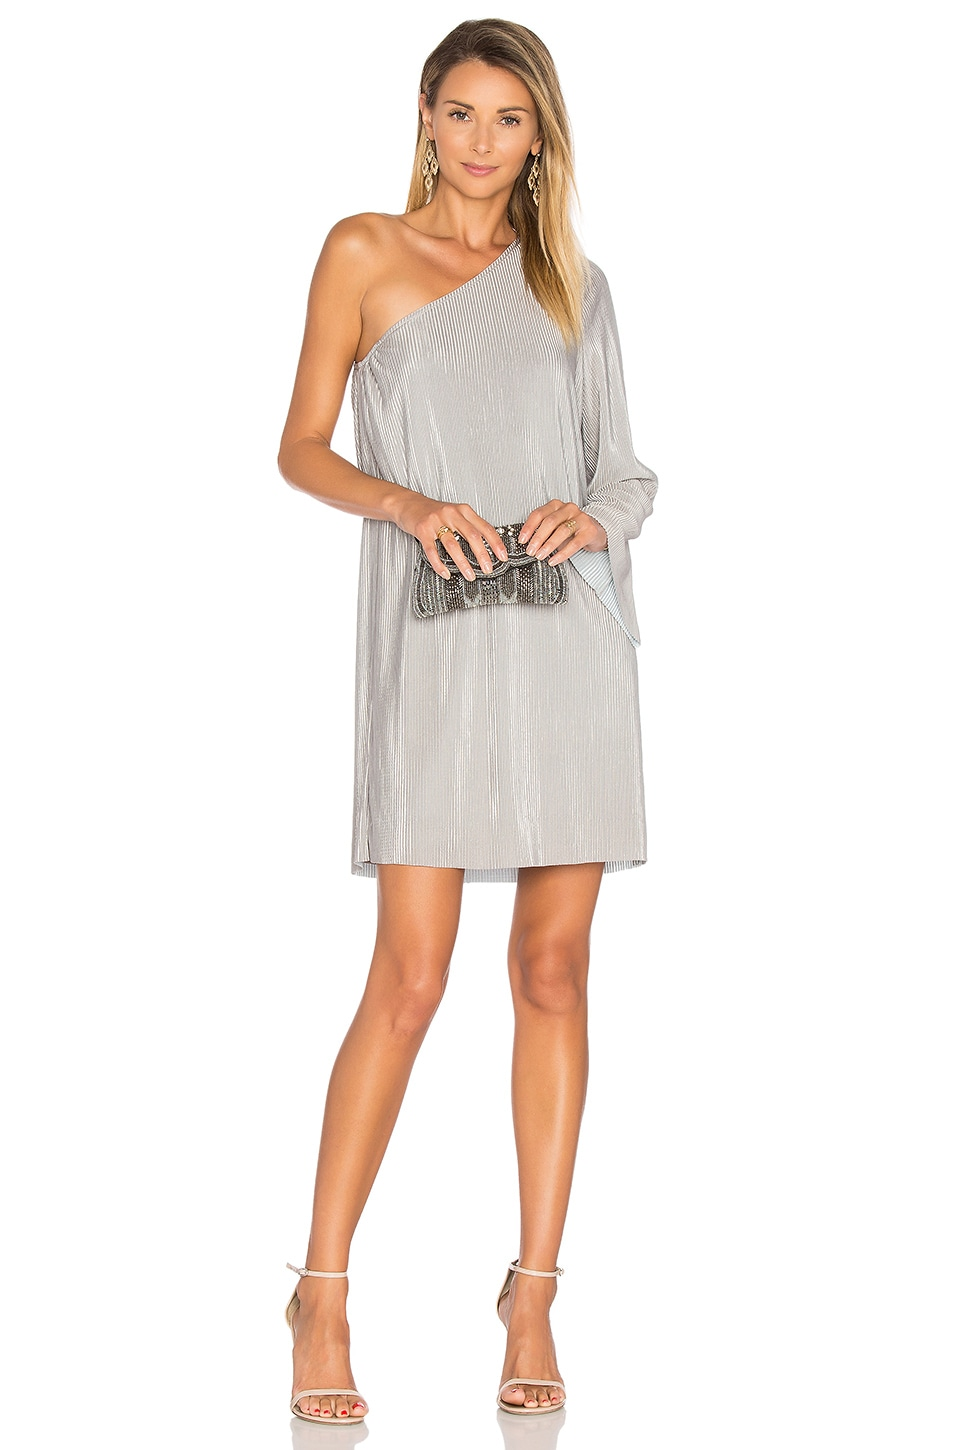 BLAQUE LABEL Luxe One Shoulder Dress in Silver